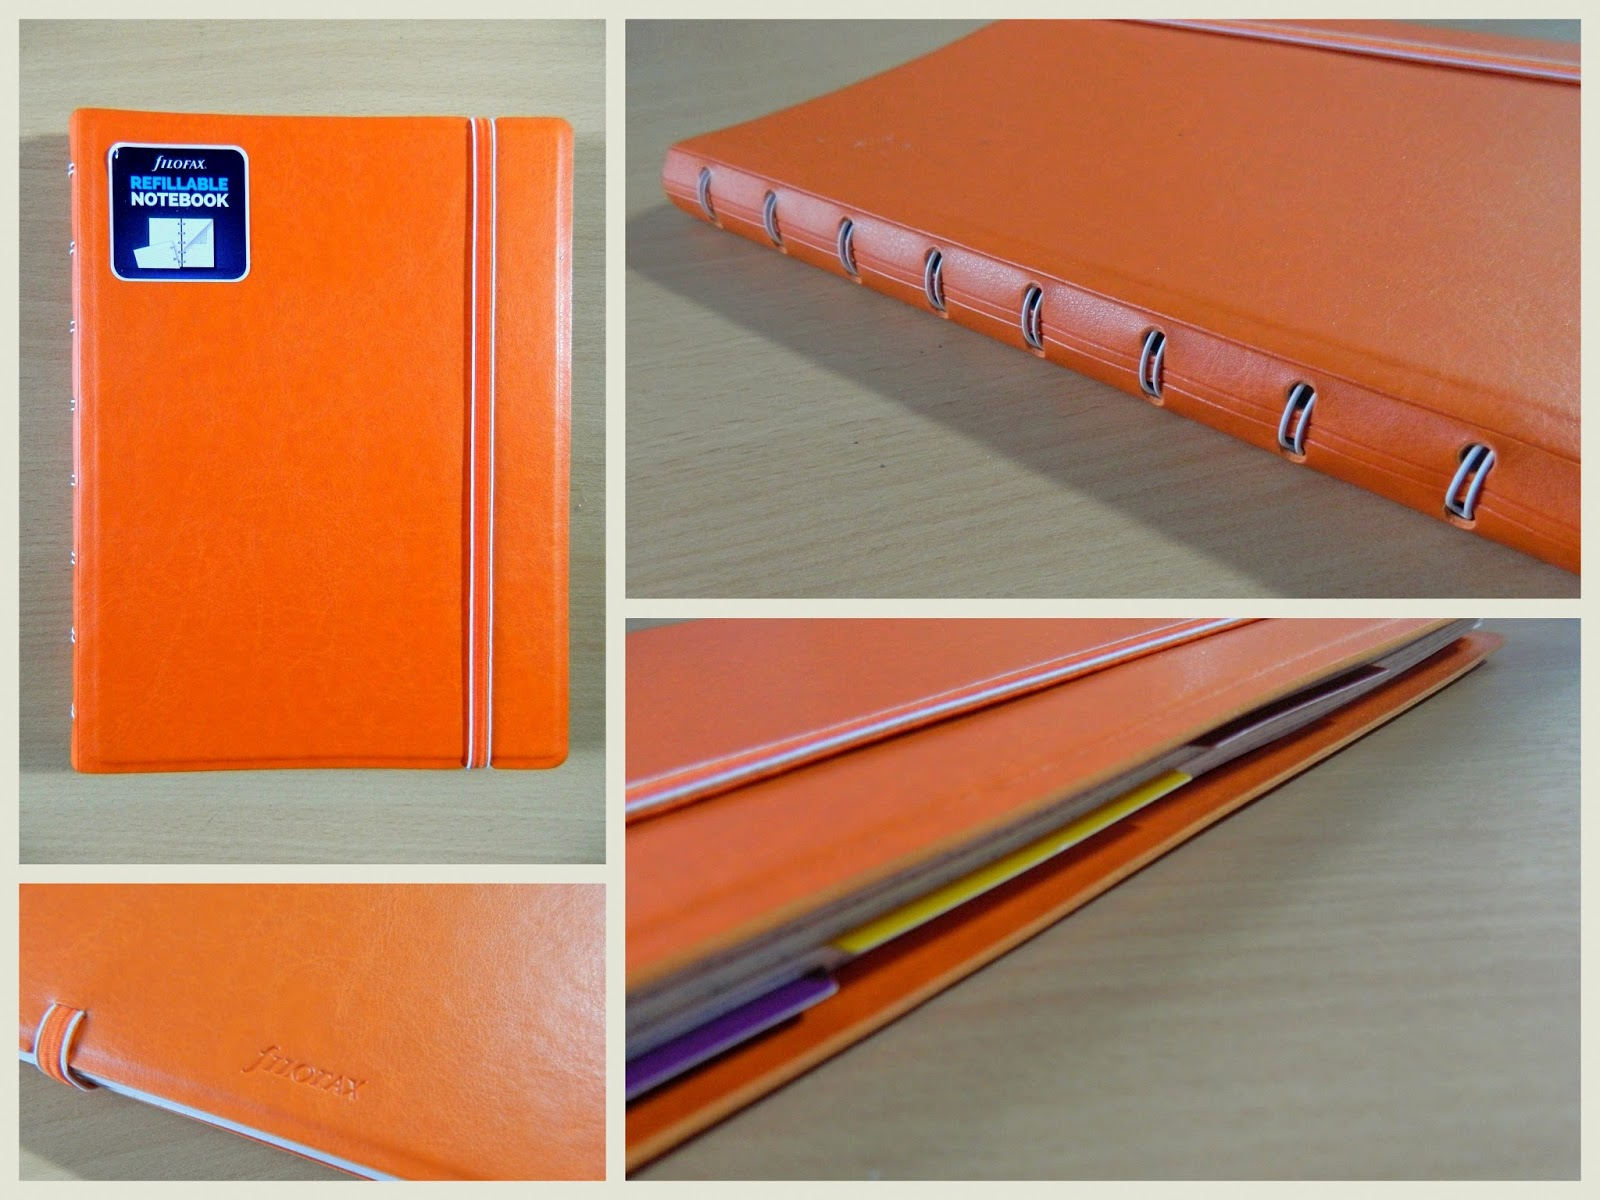 [Review] The Filofax Refillable Notebook